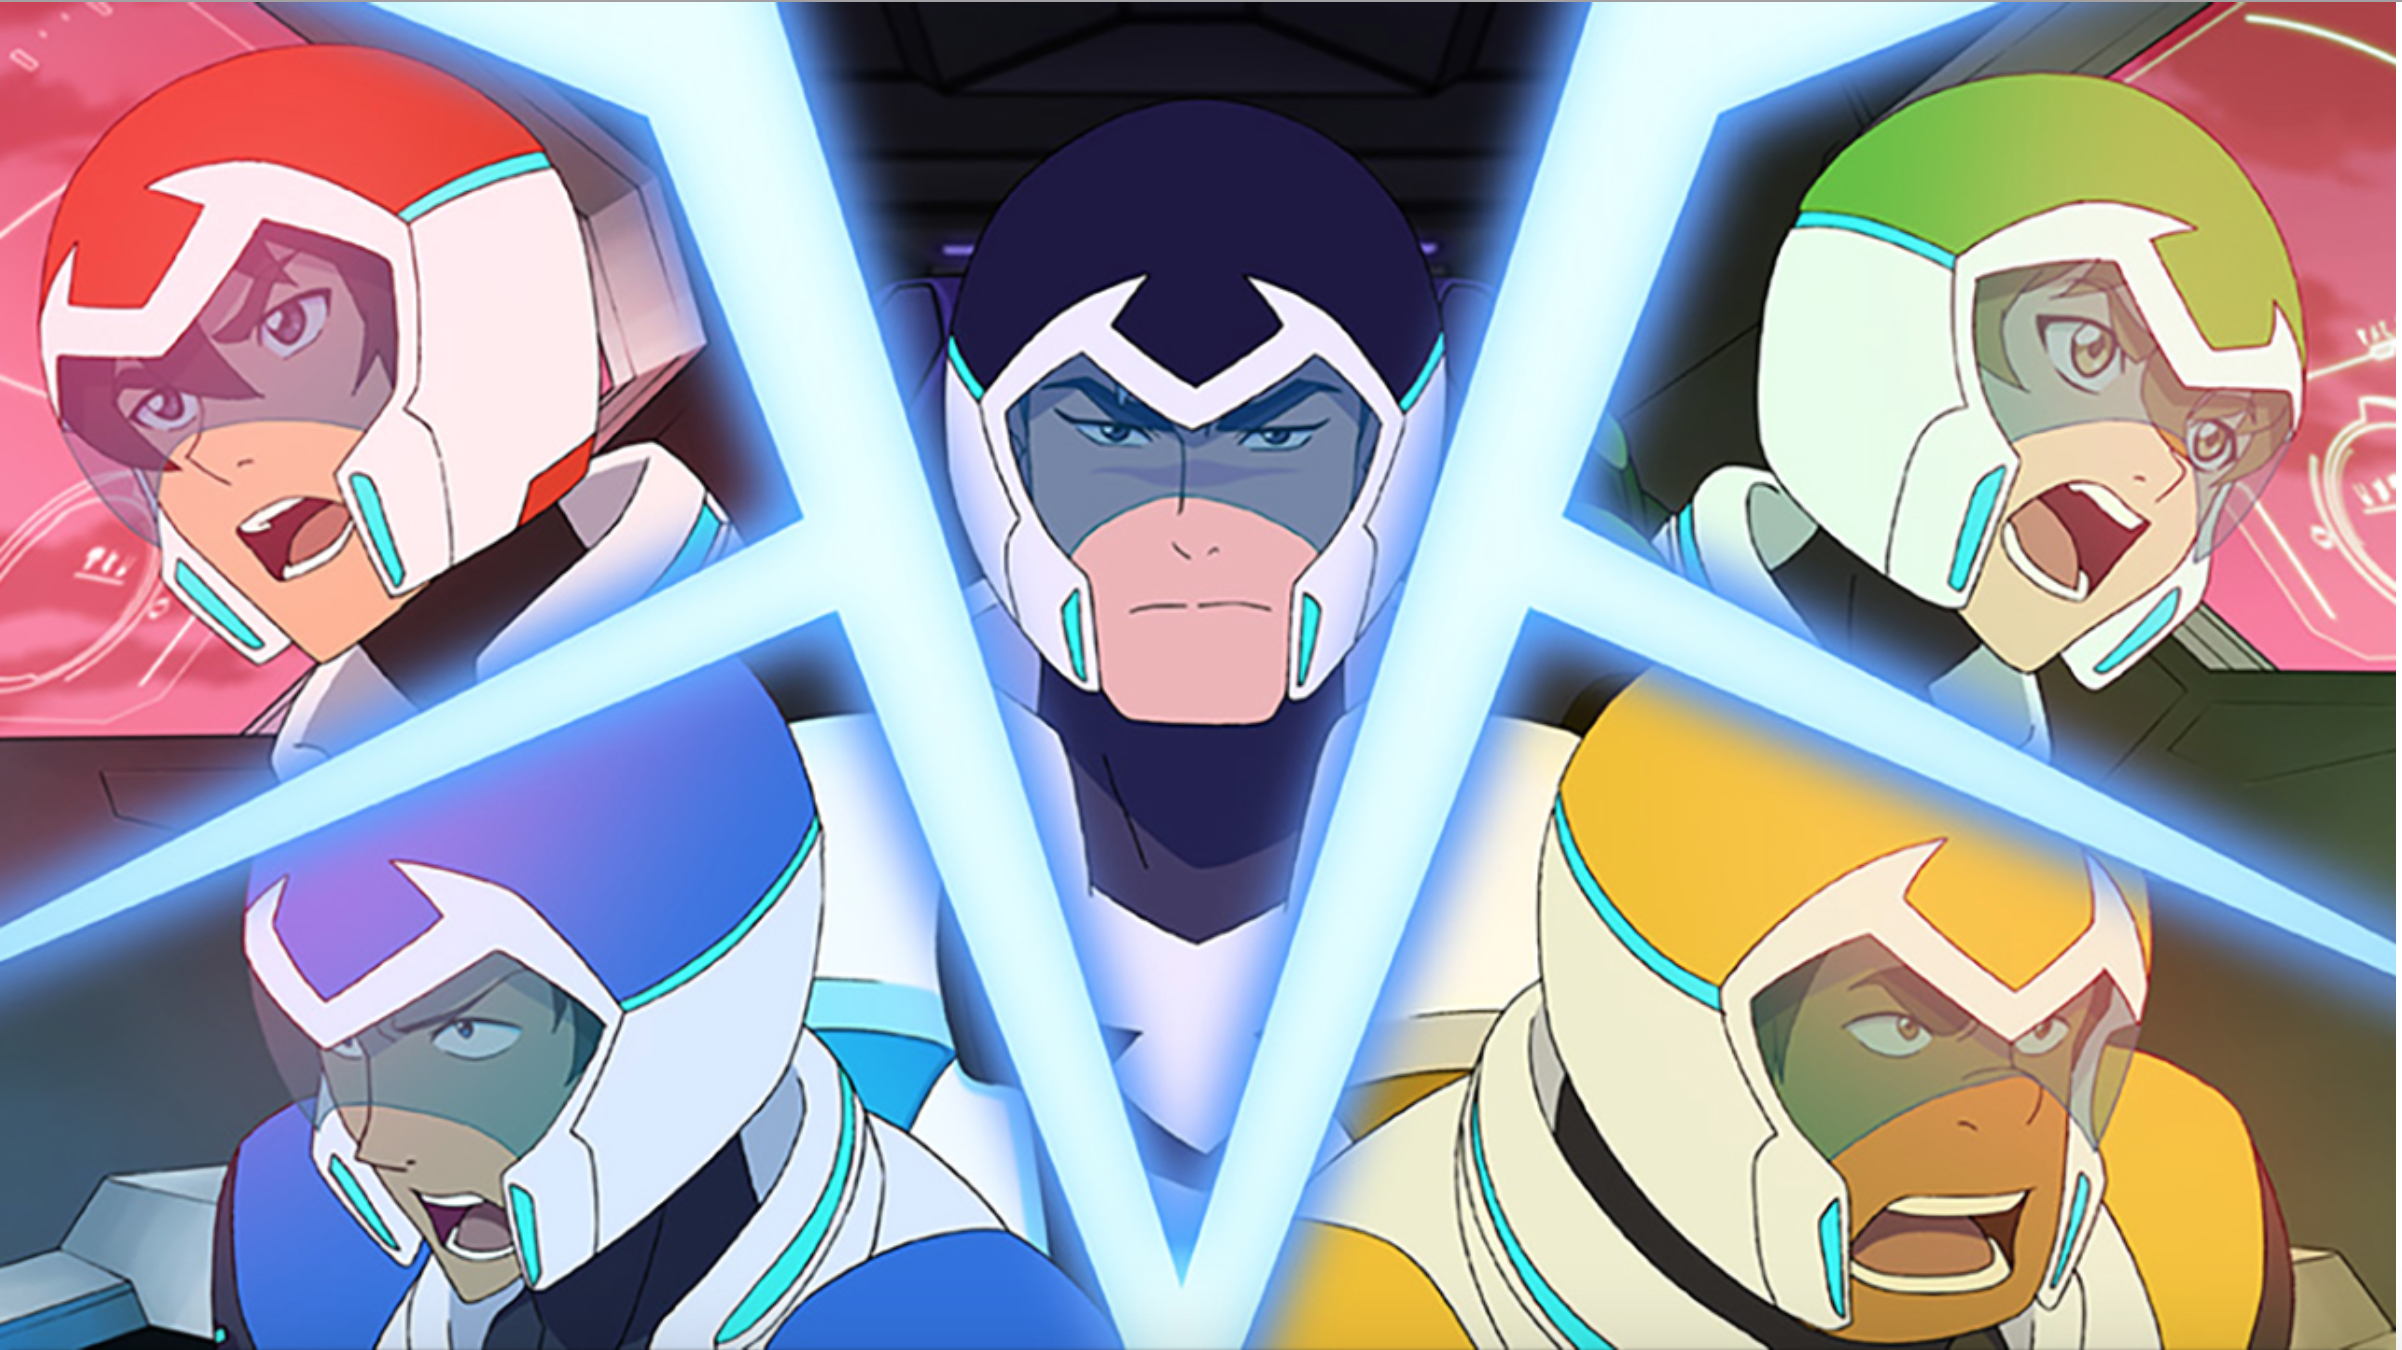 Keith, Lance, Shiro, Pidge, Hunk team up to form Voltron from ...